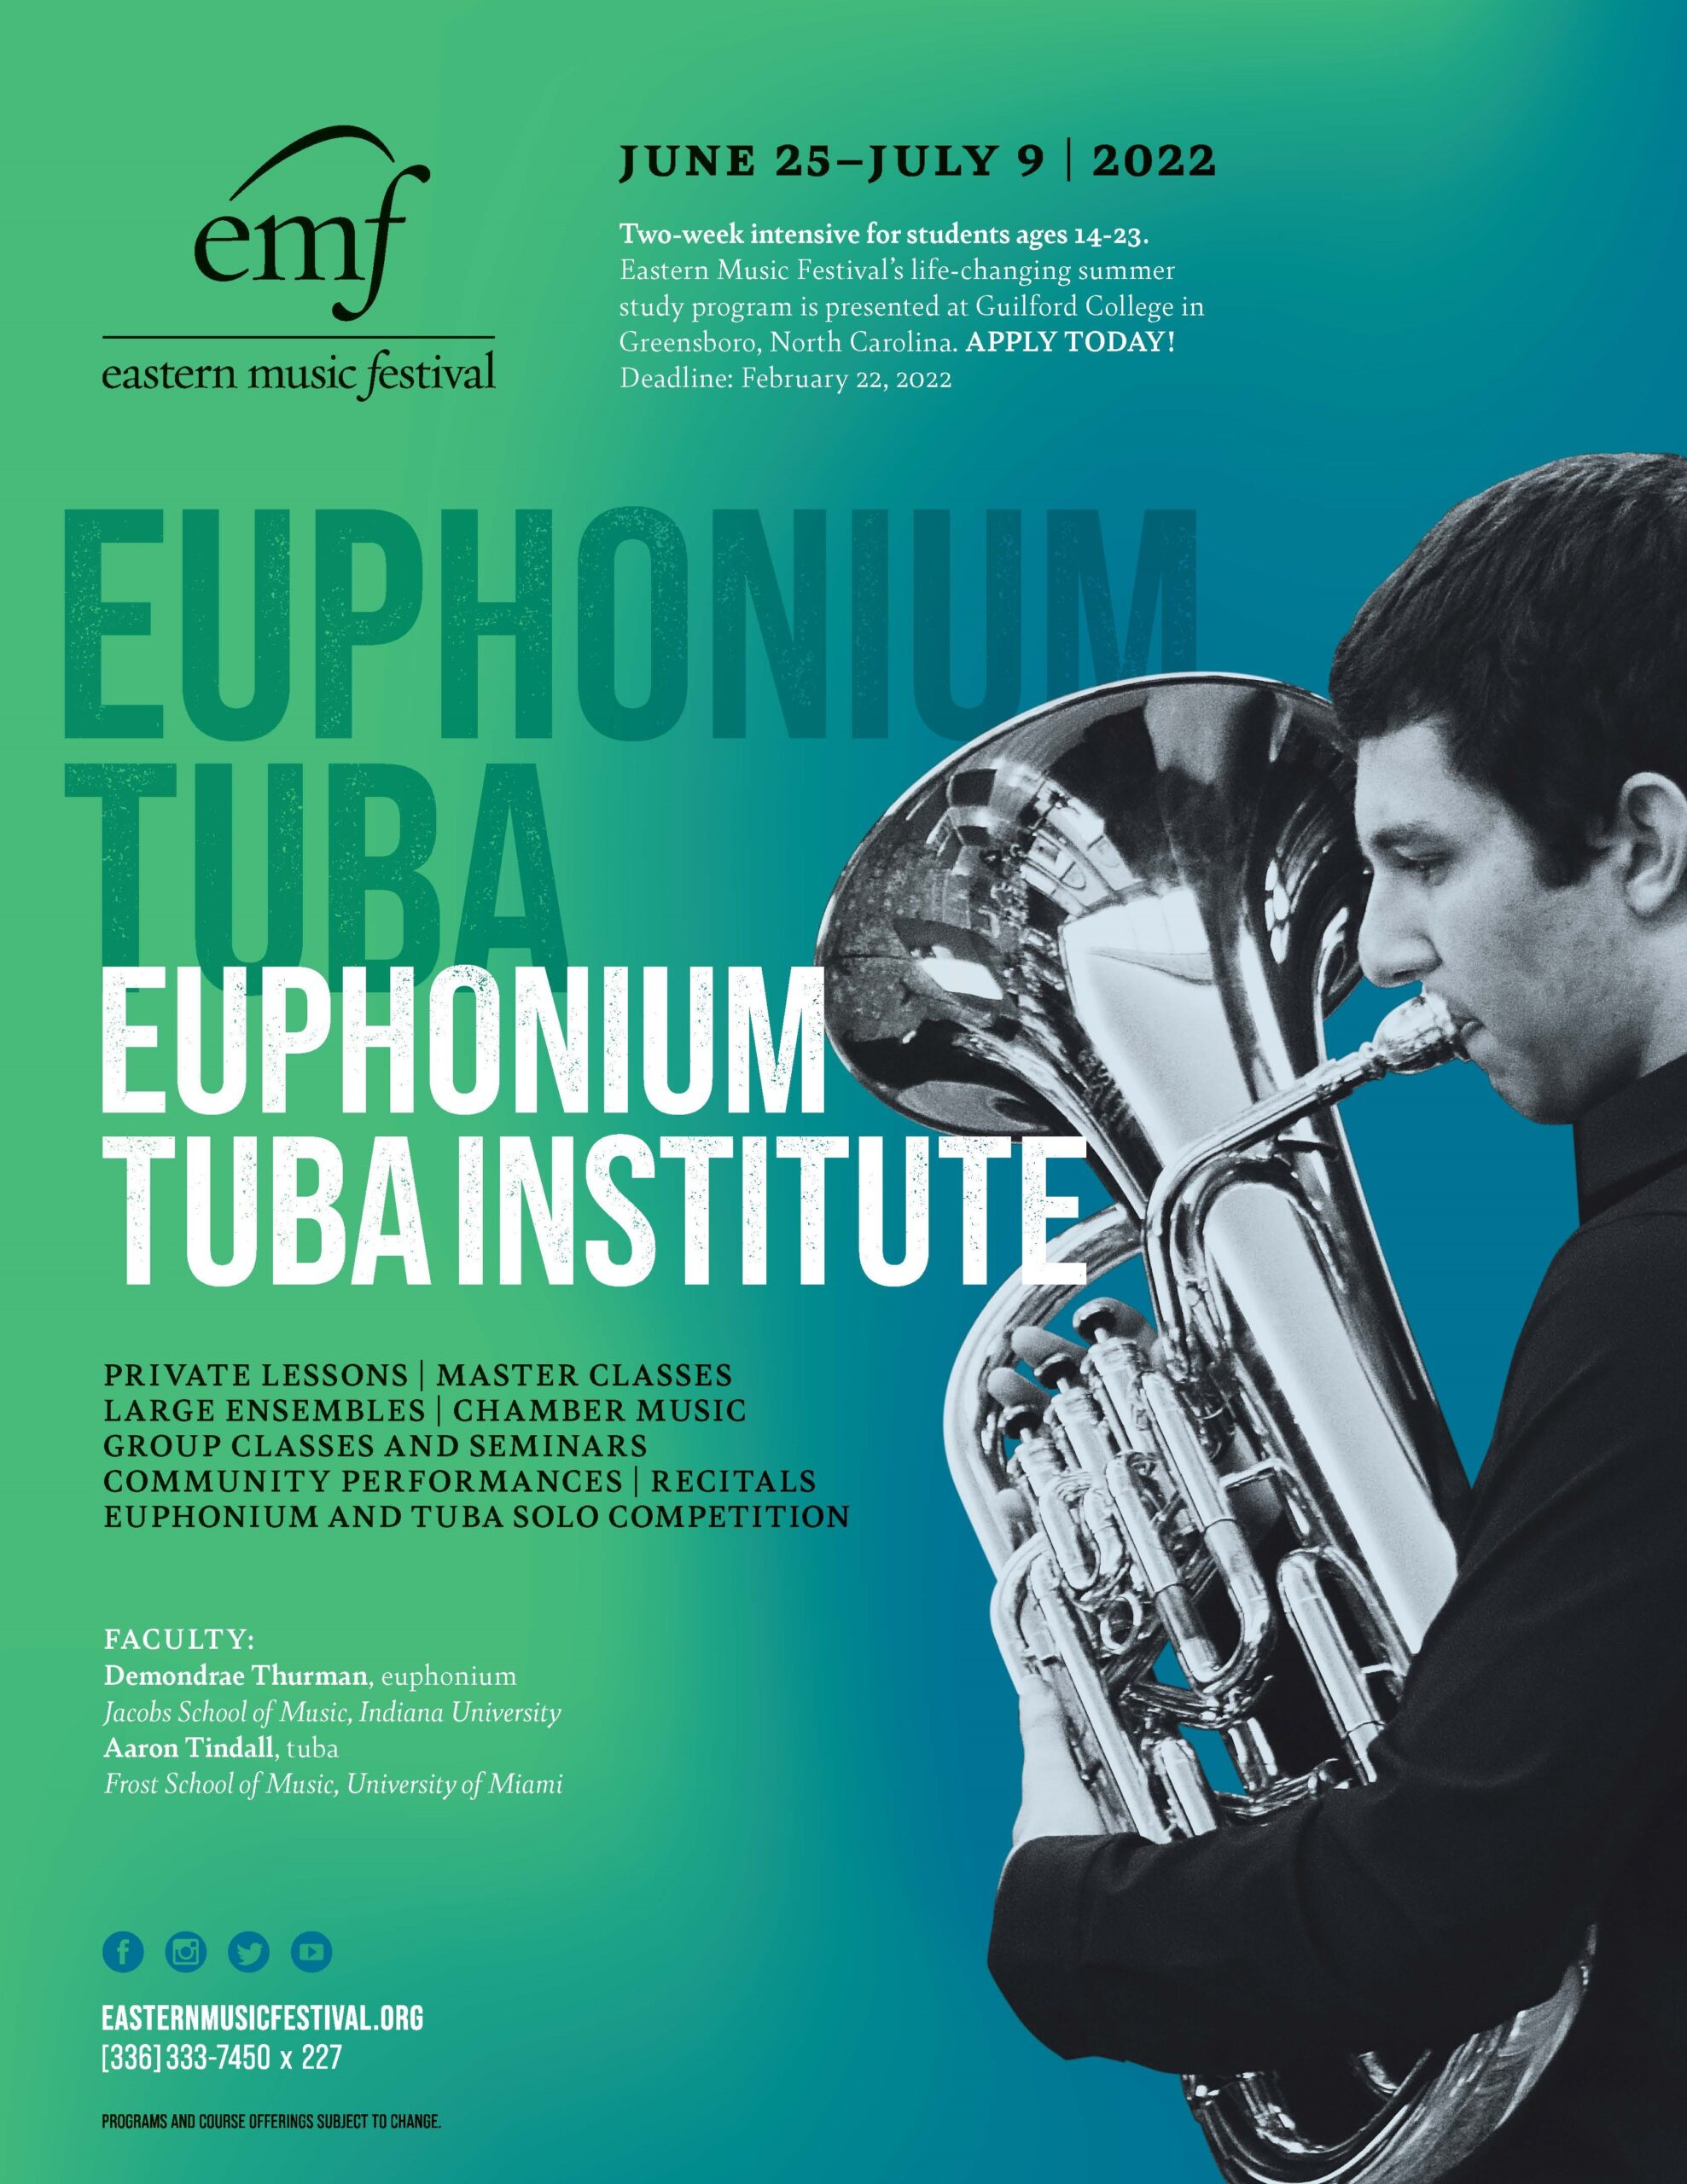 white male playing a euphonium on teal background